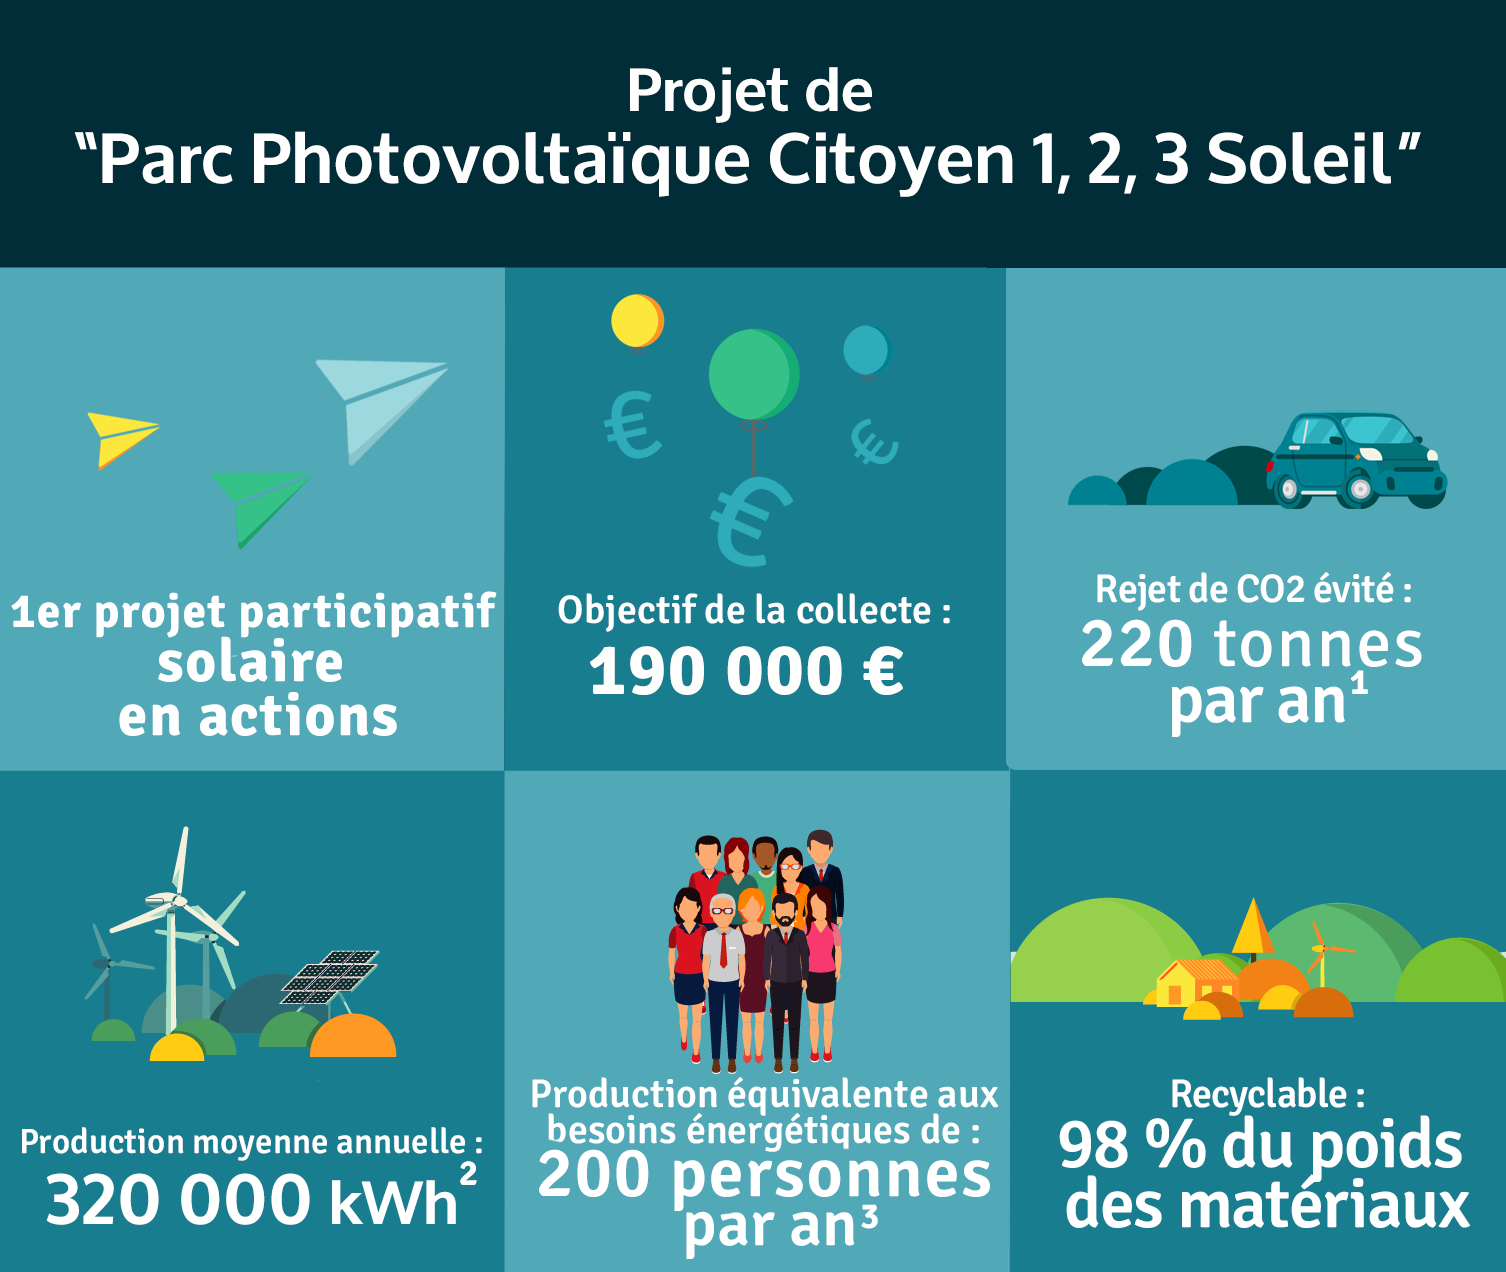 Production annuelle 325 000 kWh